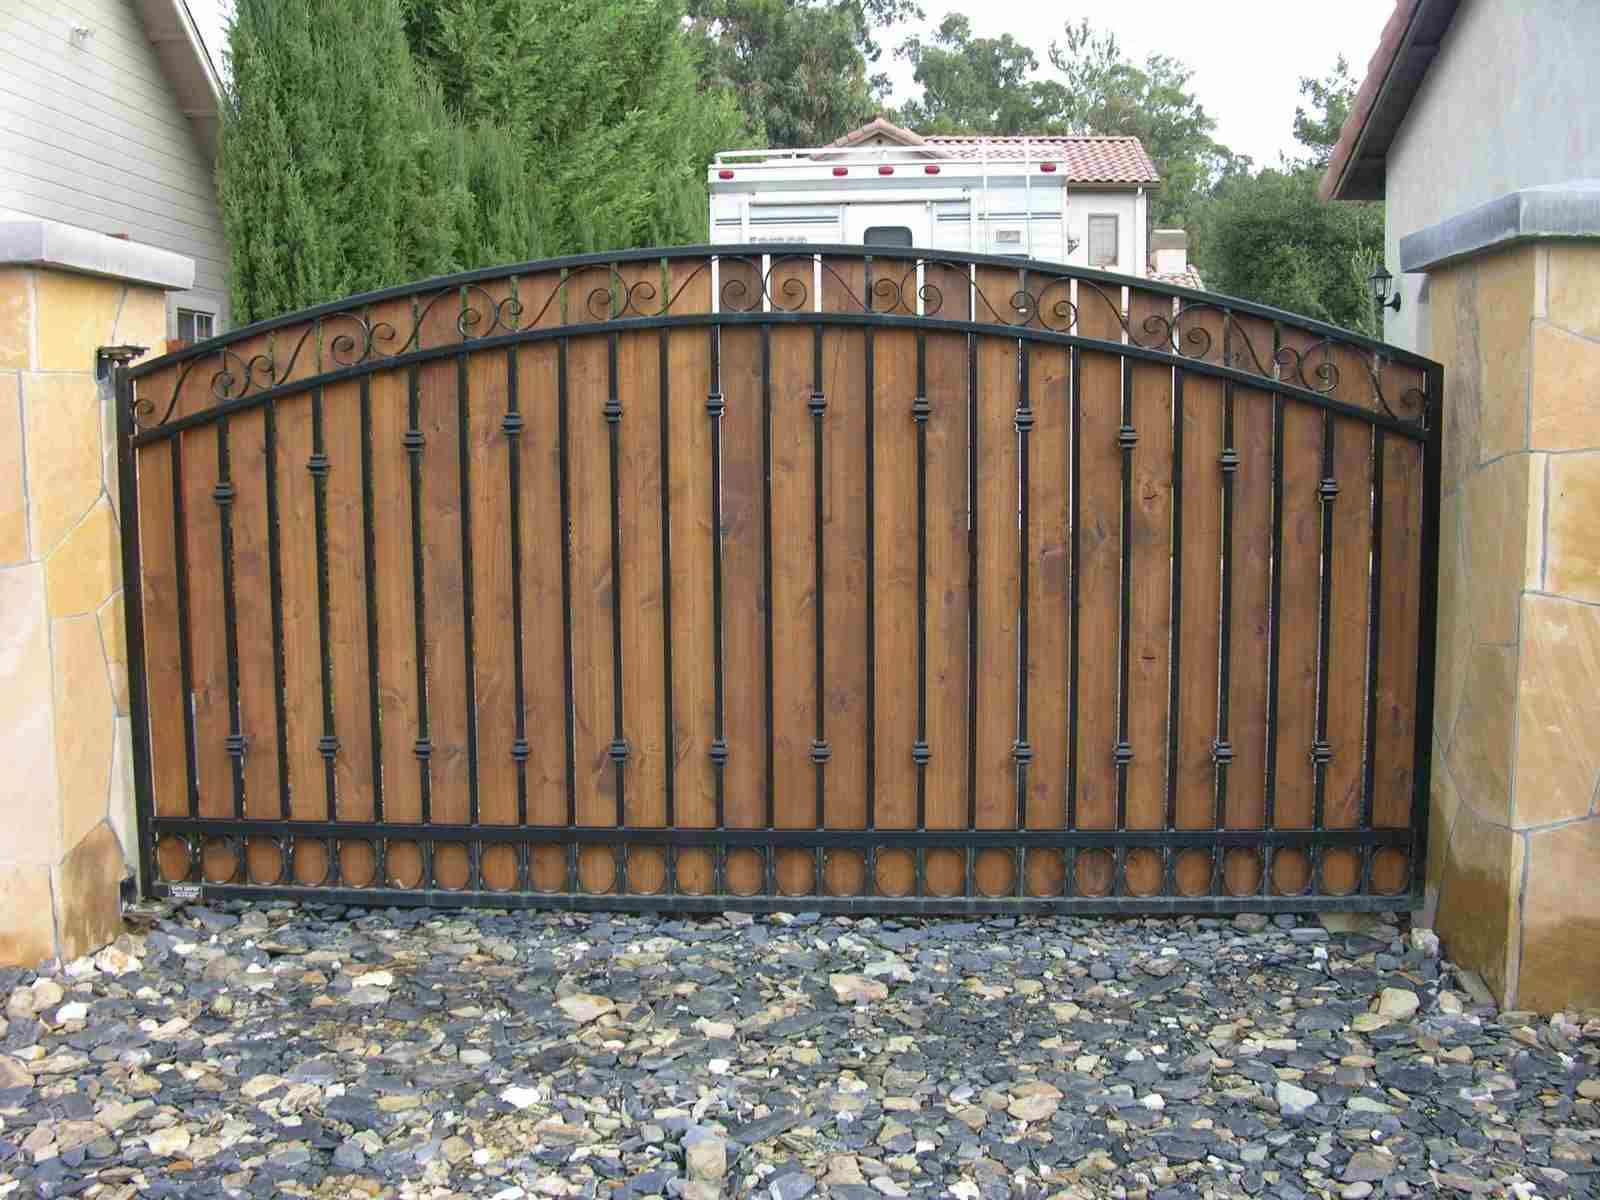 pictures of gates wood gates access control systems driveway gates security gates